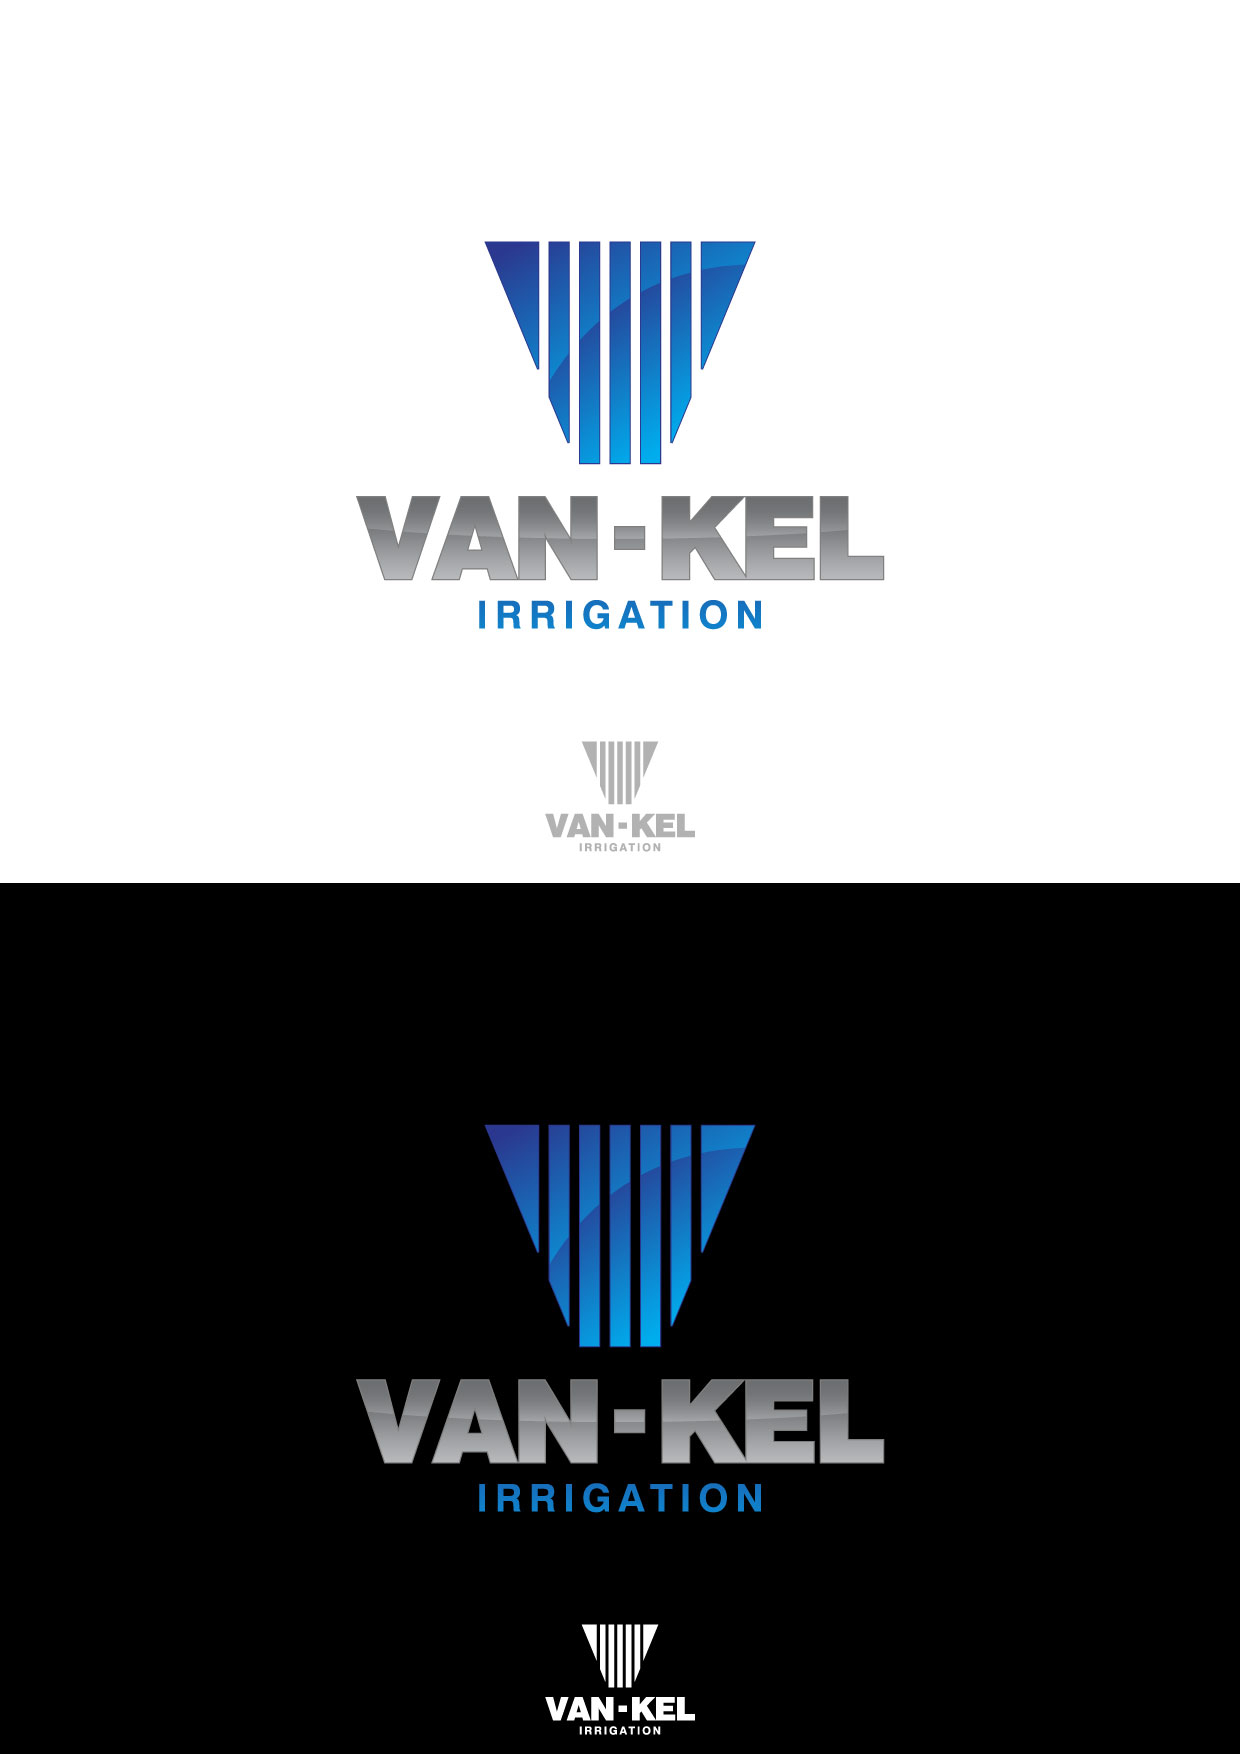 Logo Design by Nurgalih Destianto - Entry No. 172 in the Logo Design Contest Van-Kel Irrigation Logo Design.